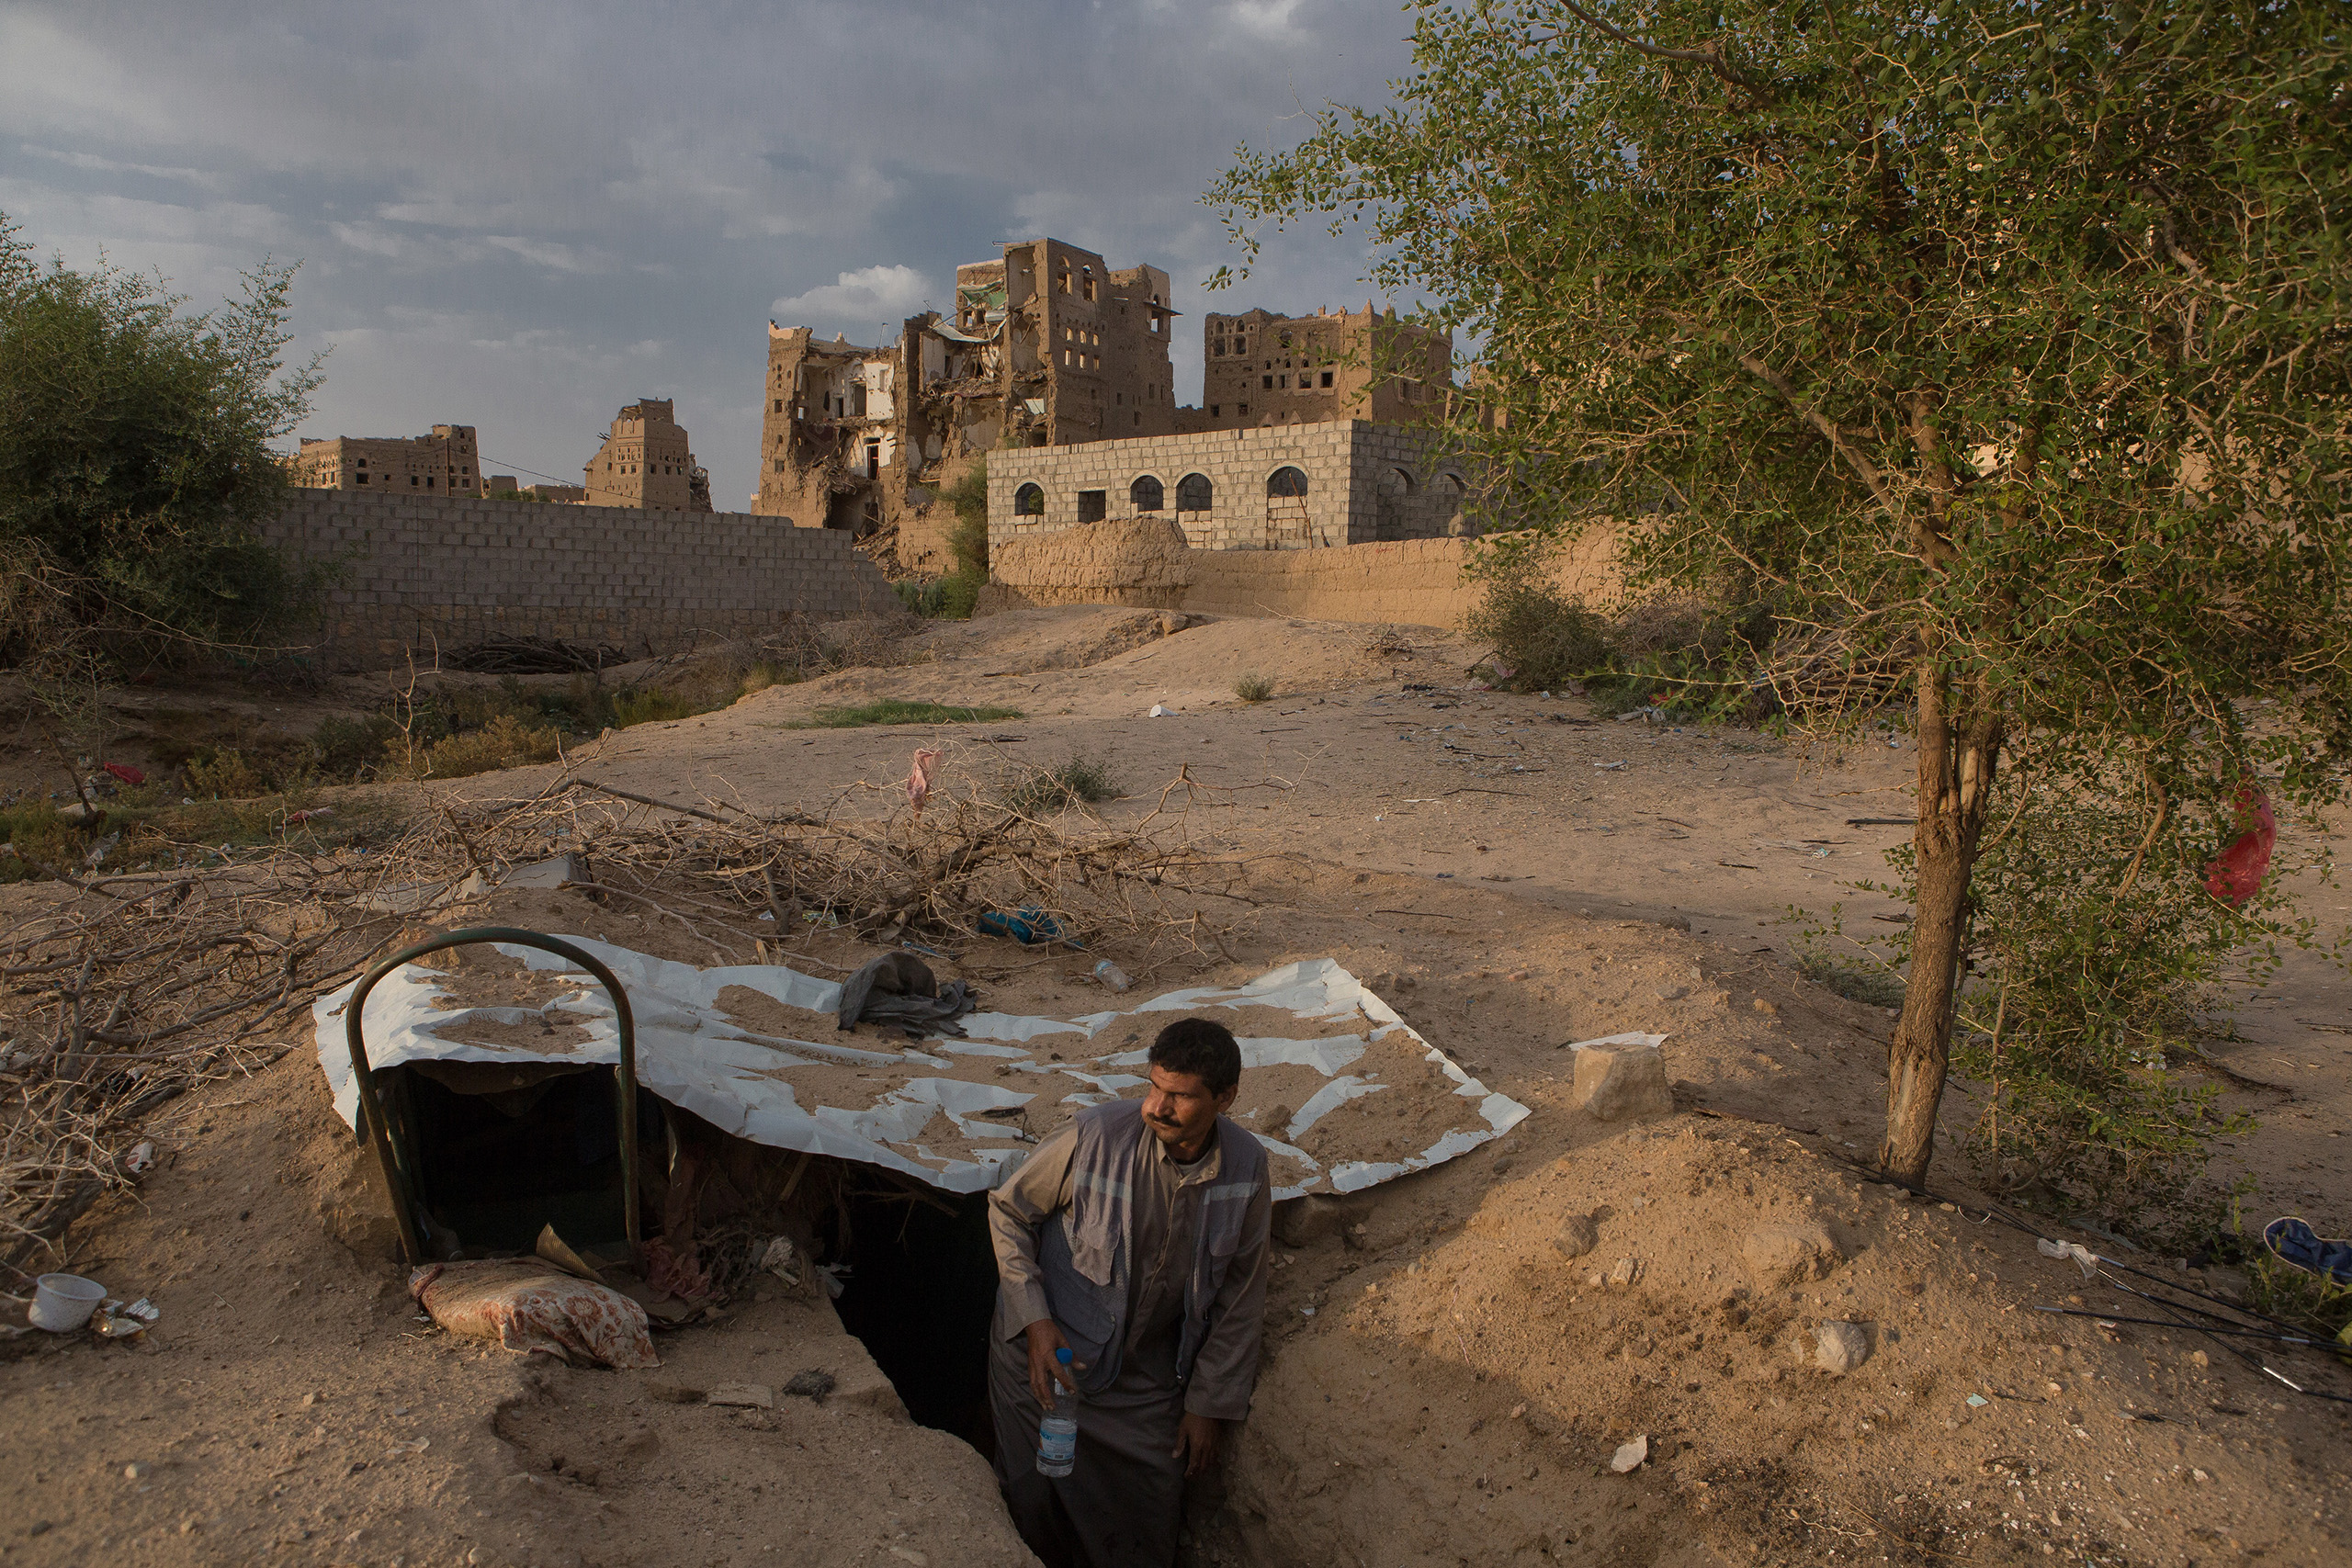 A man in a shelter in Rahban, on the outskirts of Saada City, a stronghold of the rebel Houthis.